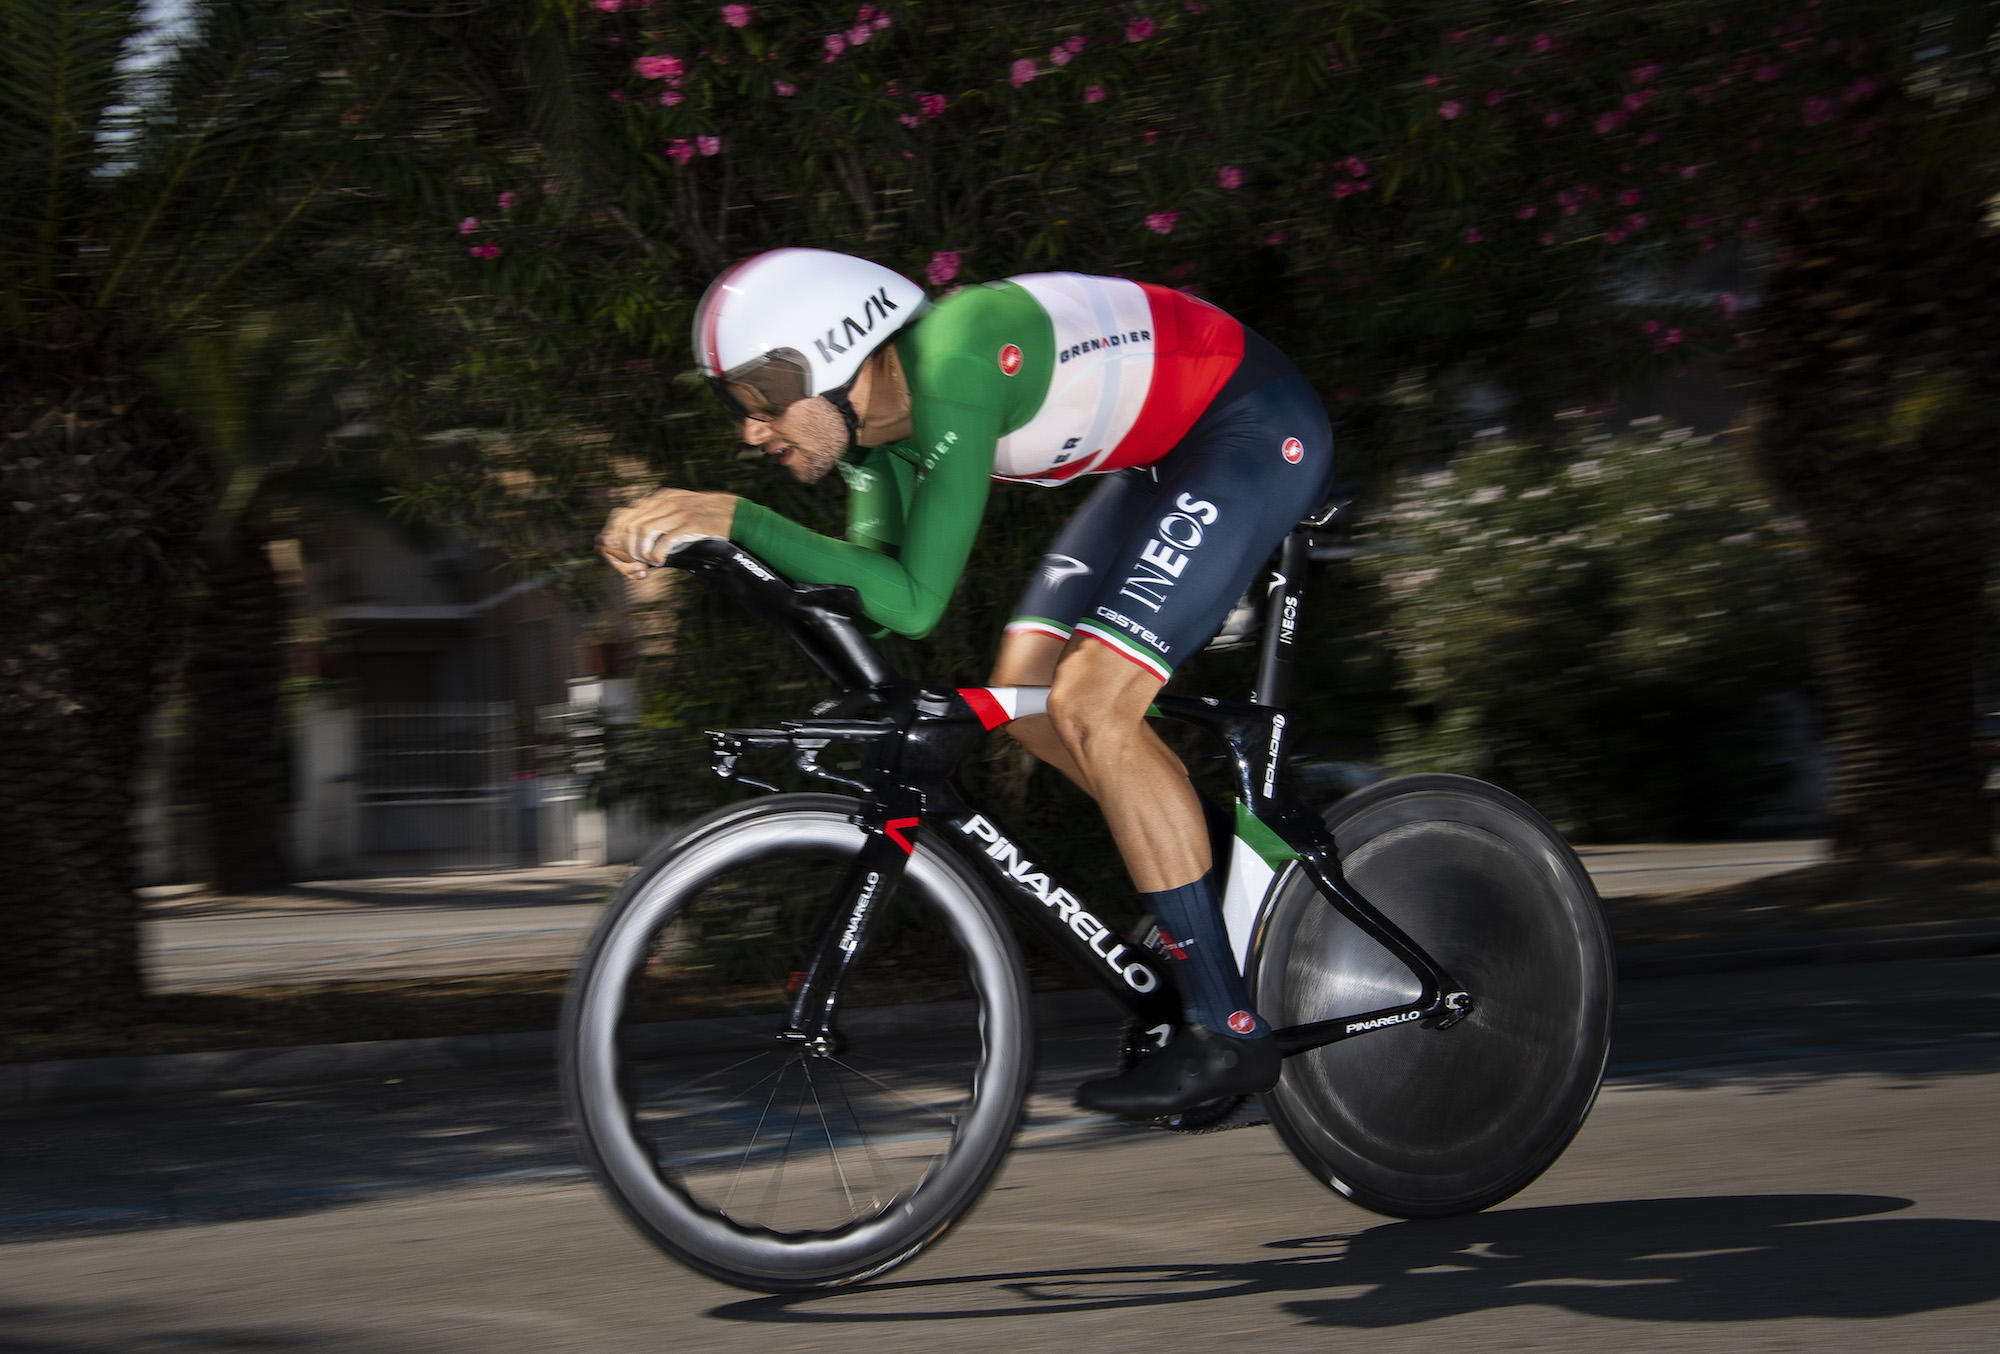 Imola 2020 Road World Championships: Filippo Ganna destroys rivals in men's time trial as Rohan Dennis knocked into fifth - Cycling Weekly